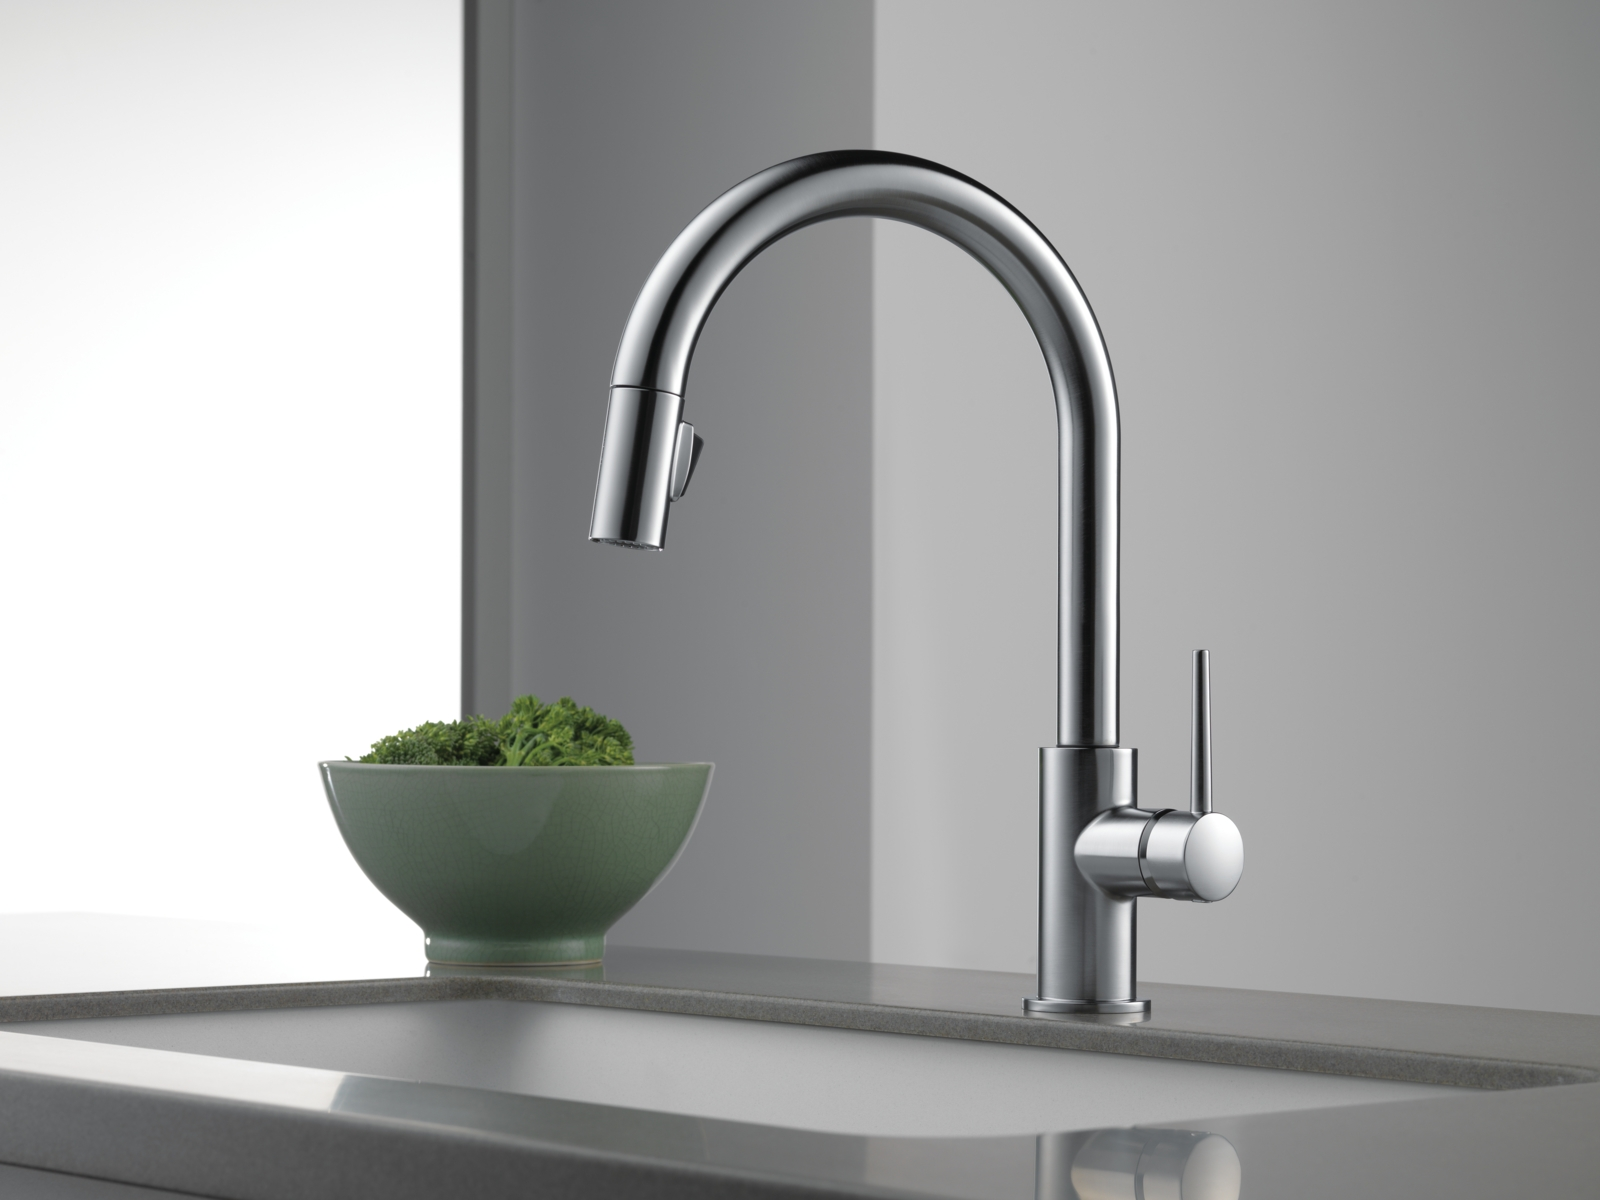 Ideas, kohler touchless faucet troubleshooting kohler touchless faucet troubleshooting trinsic kitchen collection kitchen faucets pot fillers and 1600 x 1200  .